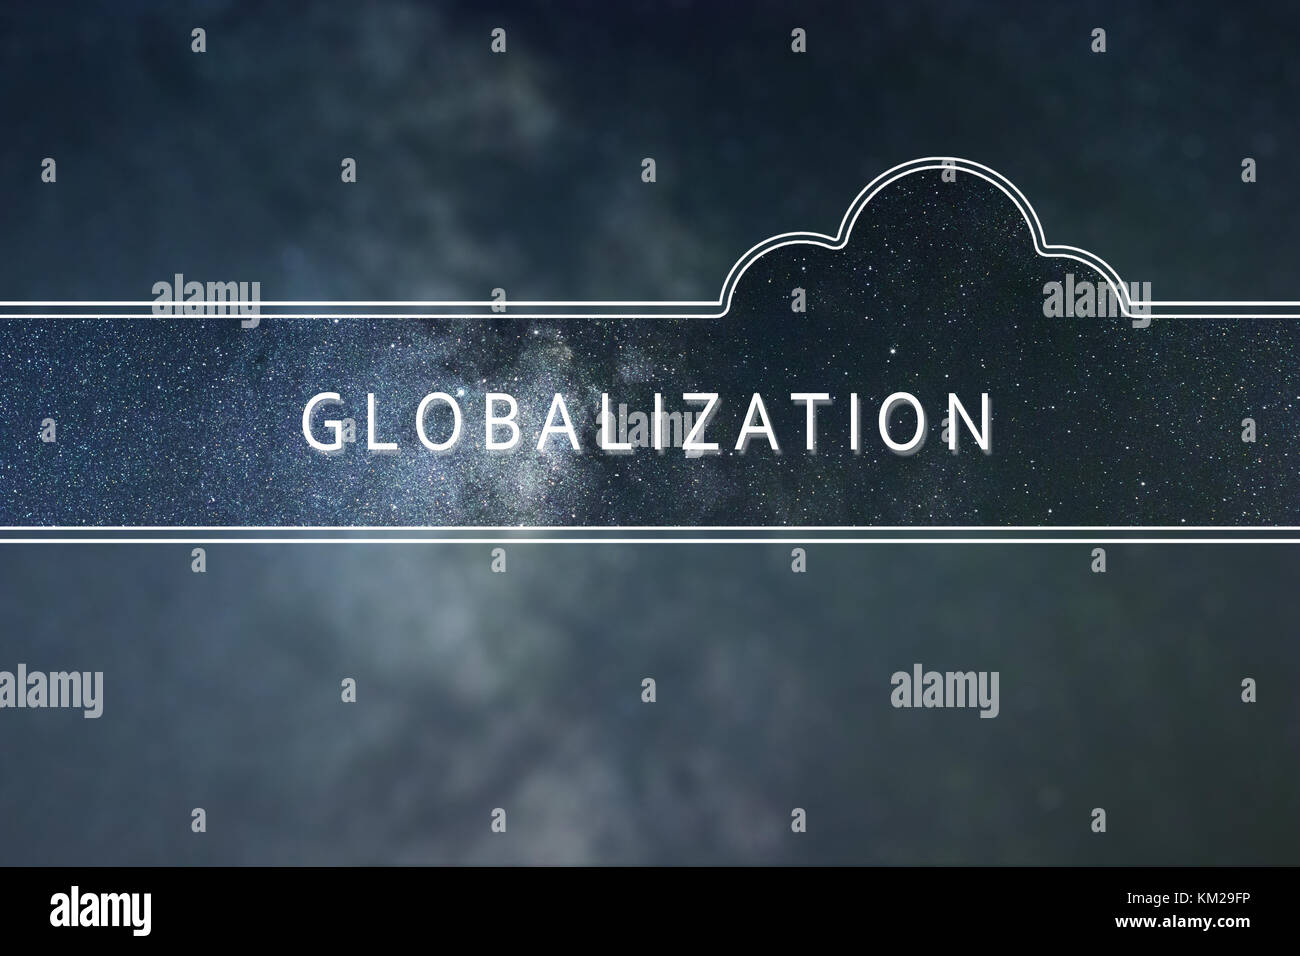 GLOBALIZATION word cloud Concept. Space background. - Stock Image